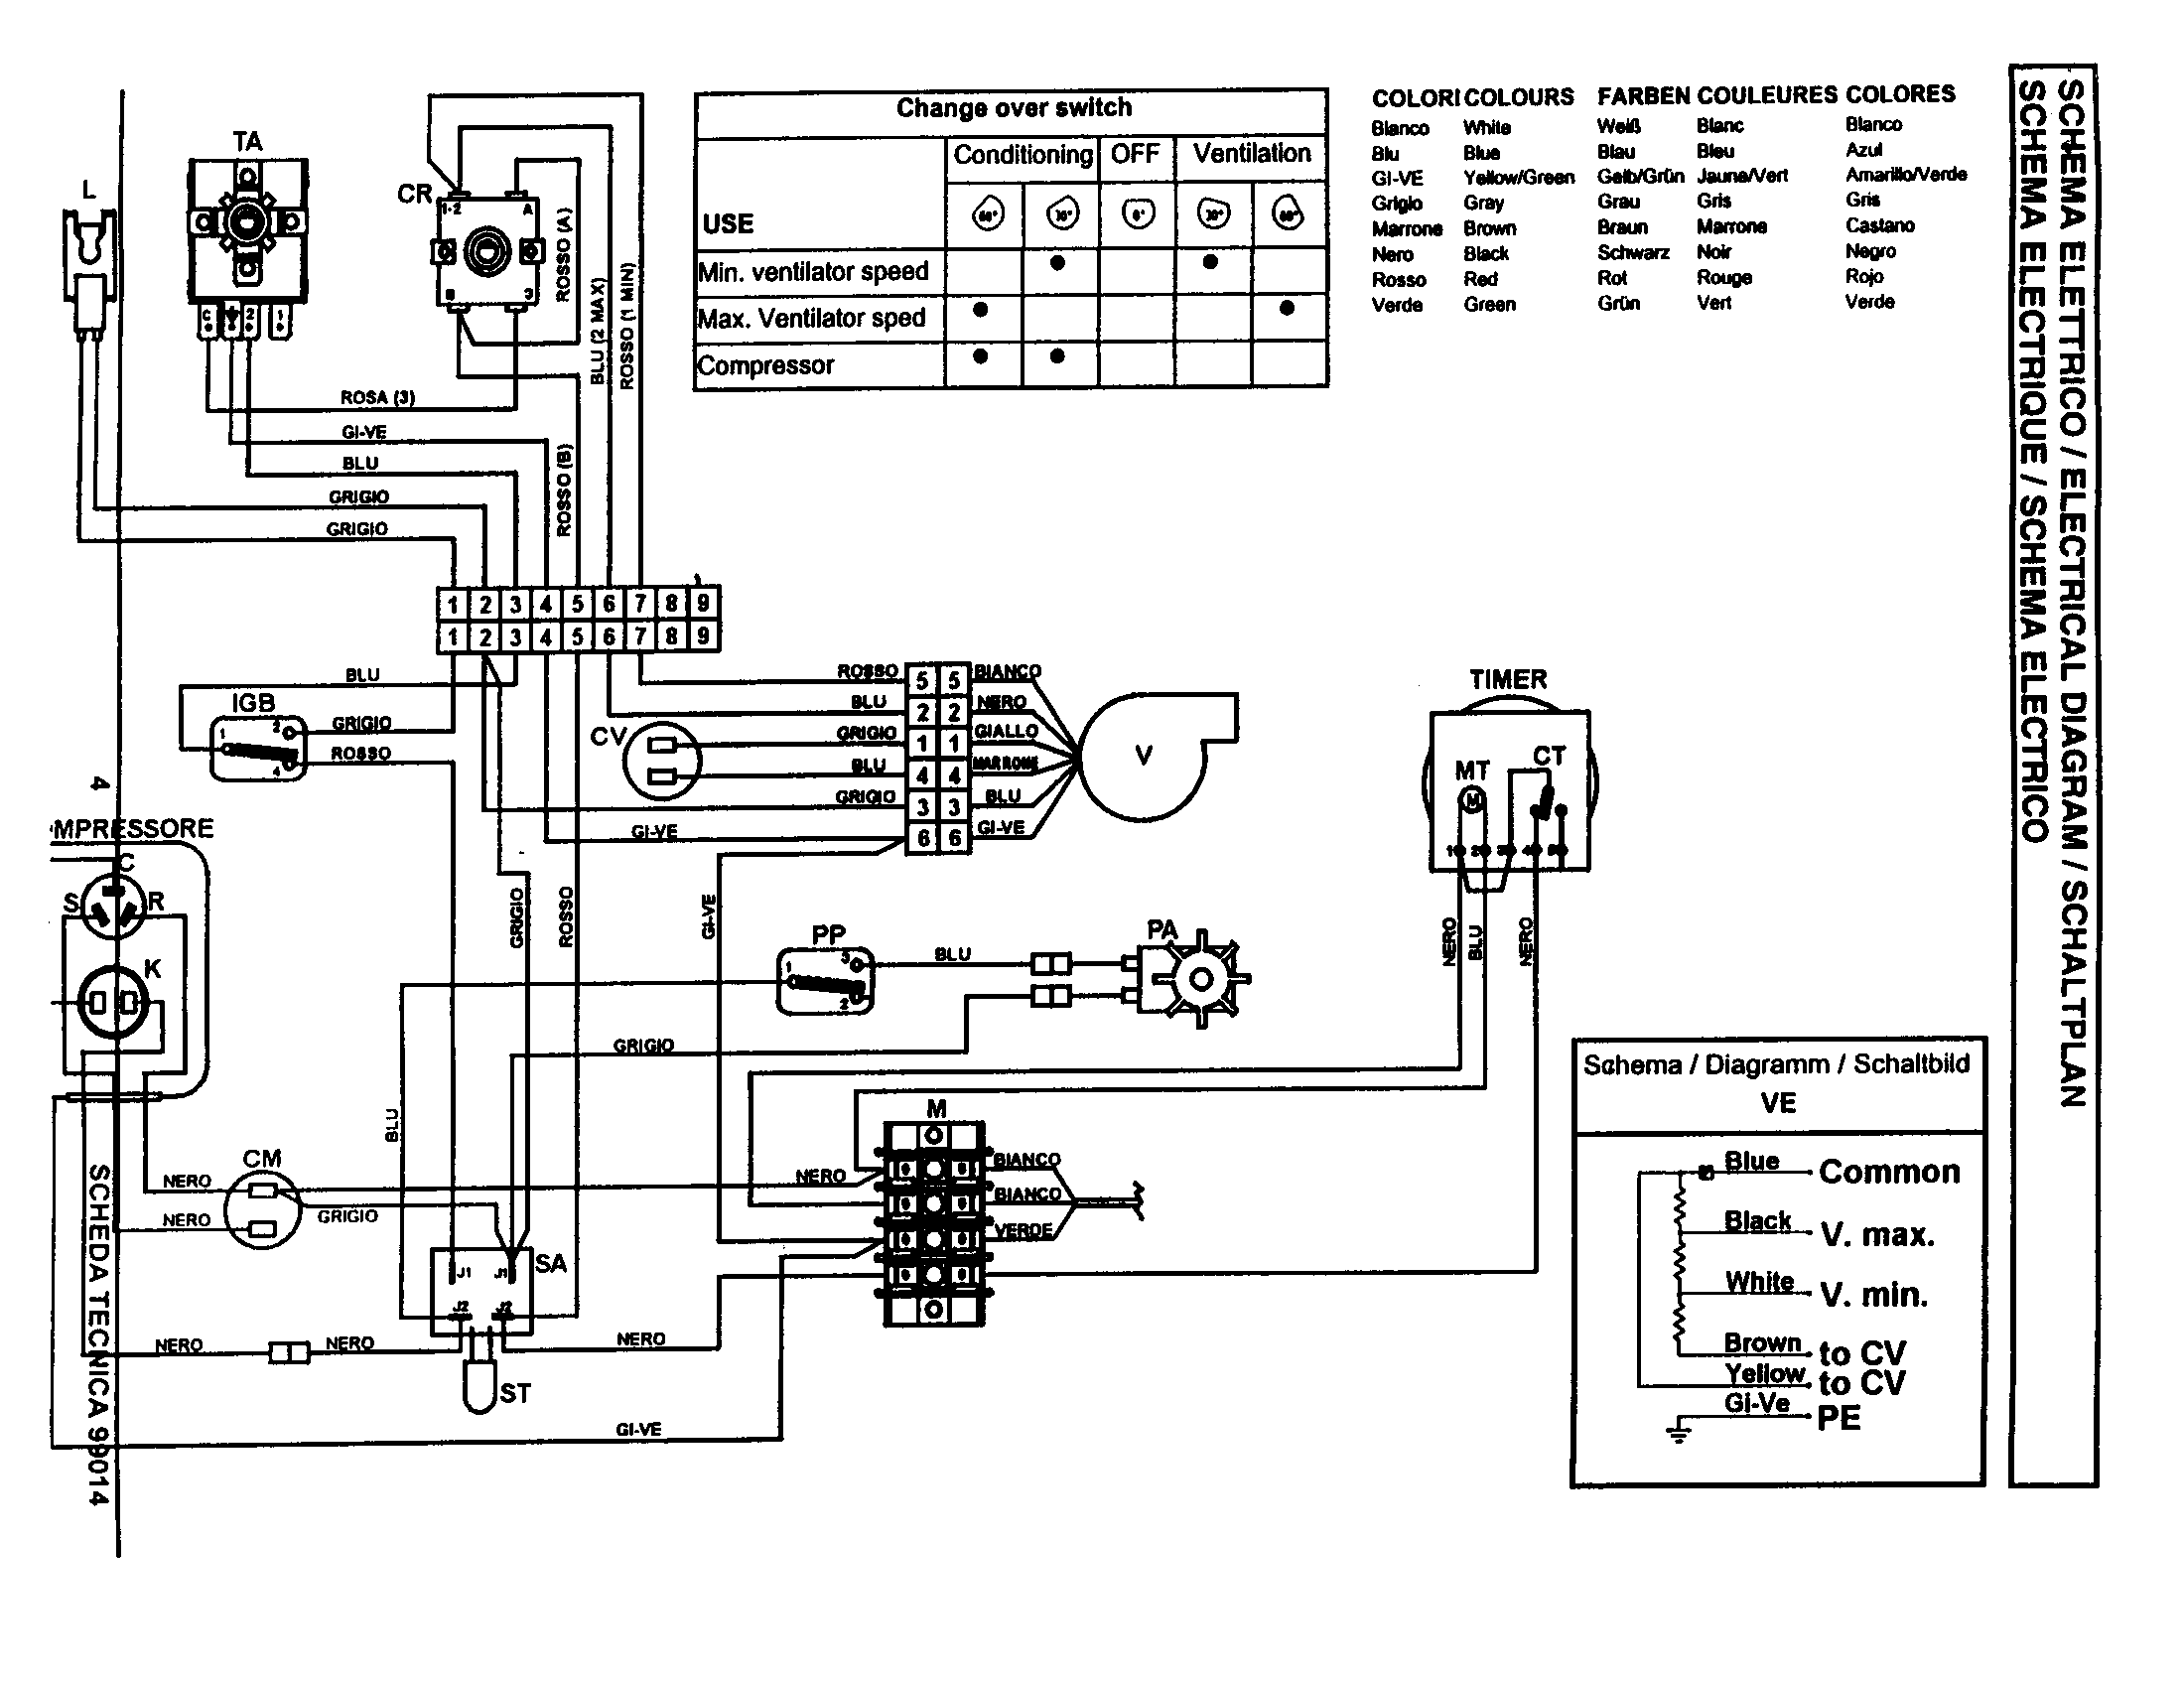 New Wiring Diagram Kompresor Ac Diagram Diagramtemplate Diagramsample Diagram Air Conditioning Unit Electrical Circuit Diagram